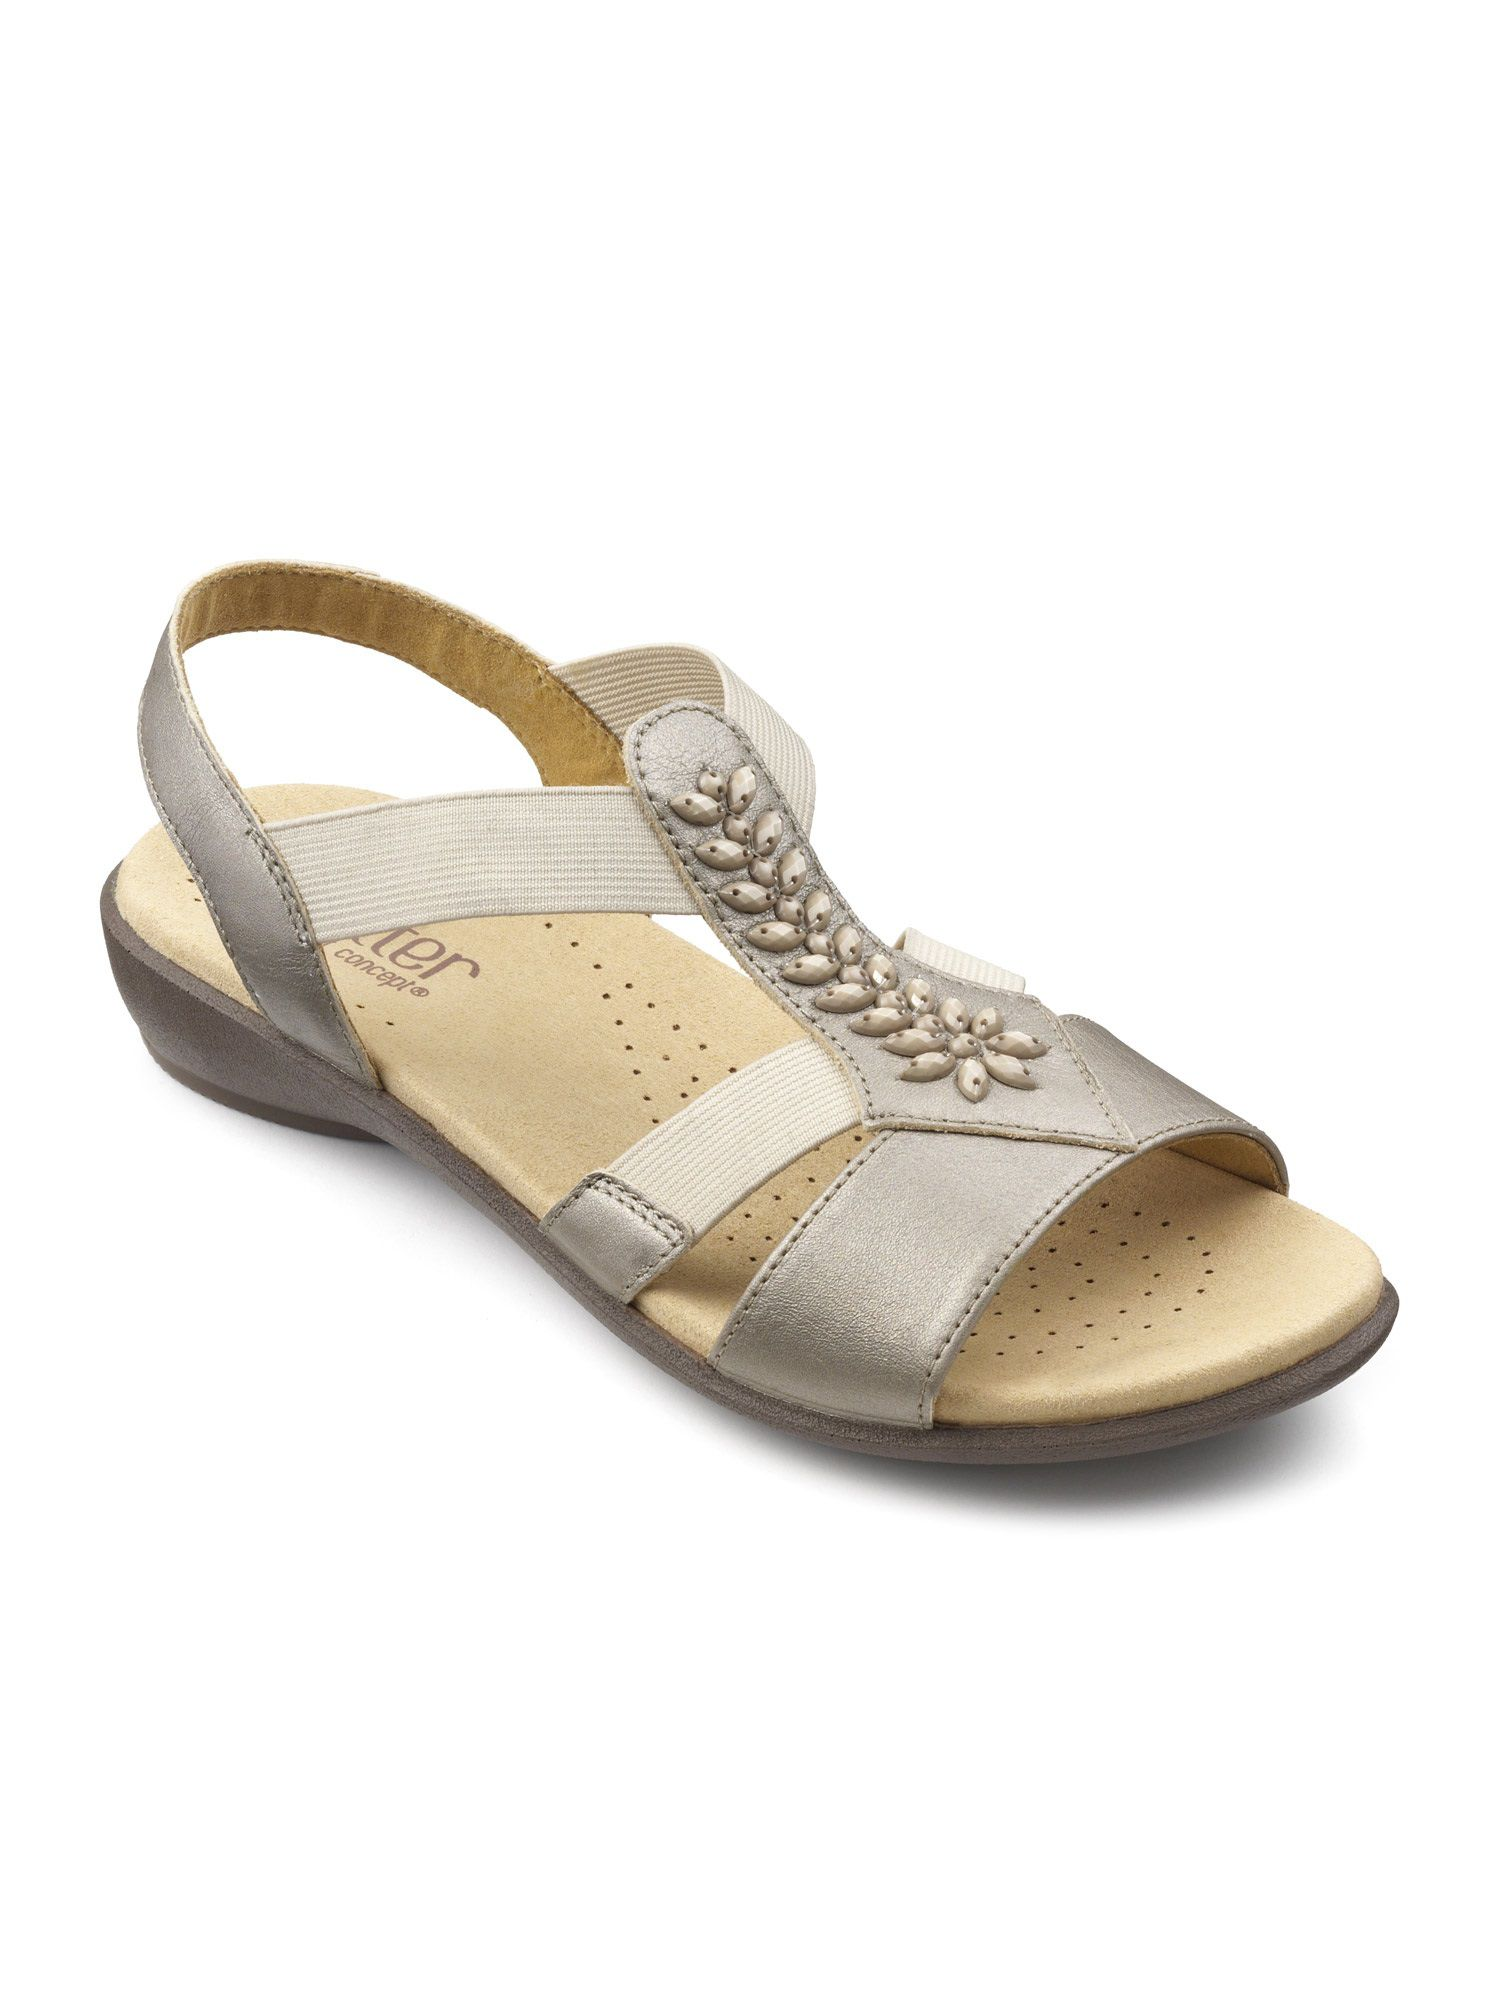 Hotter Beam sandals, Silverlic